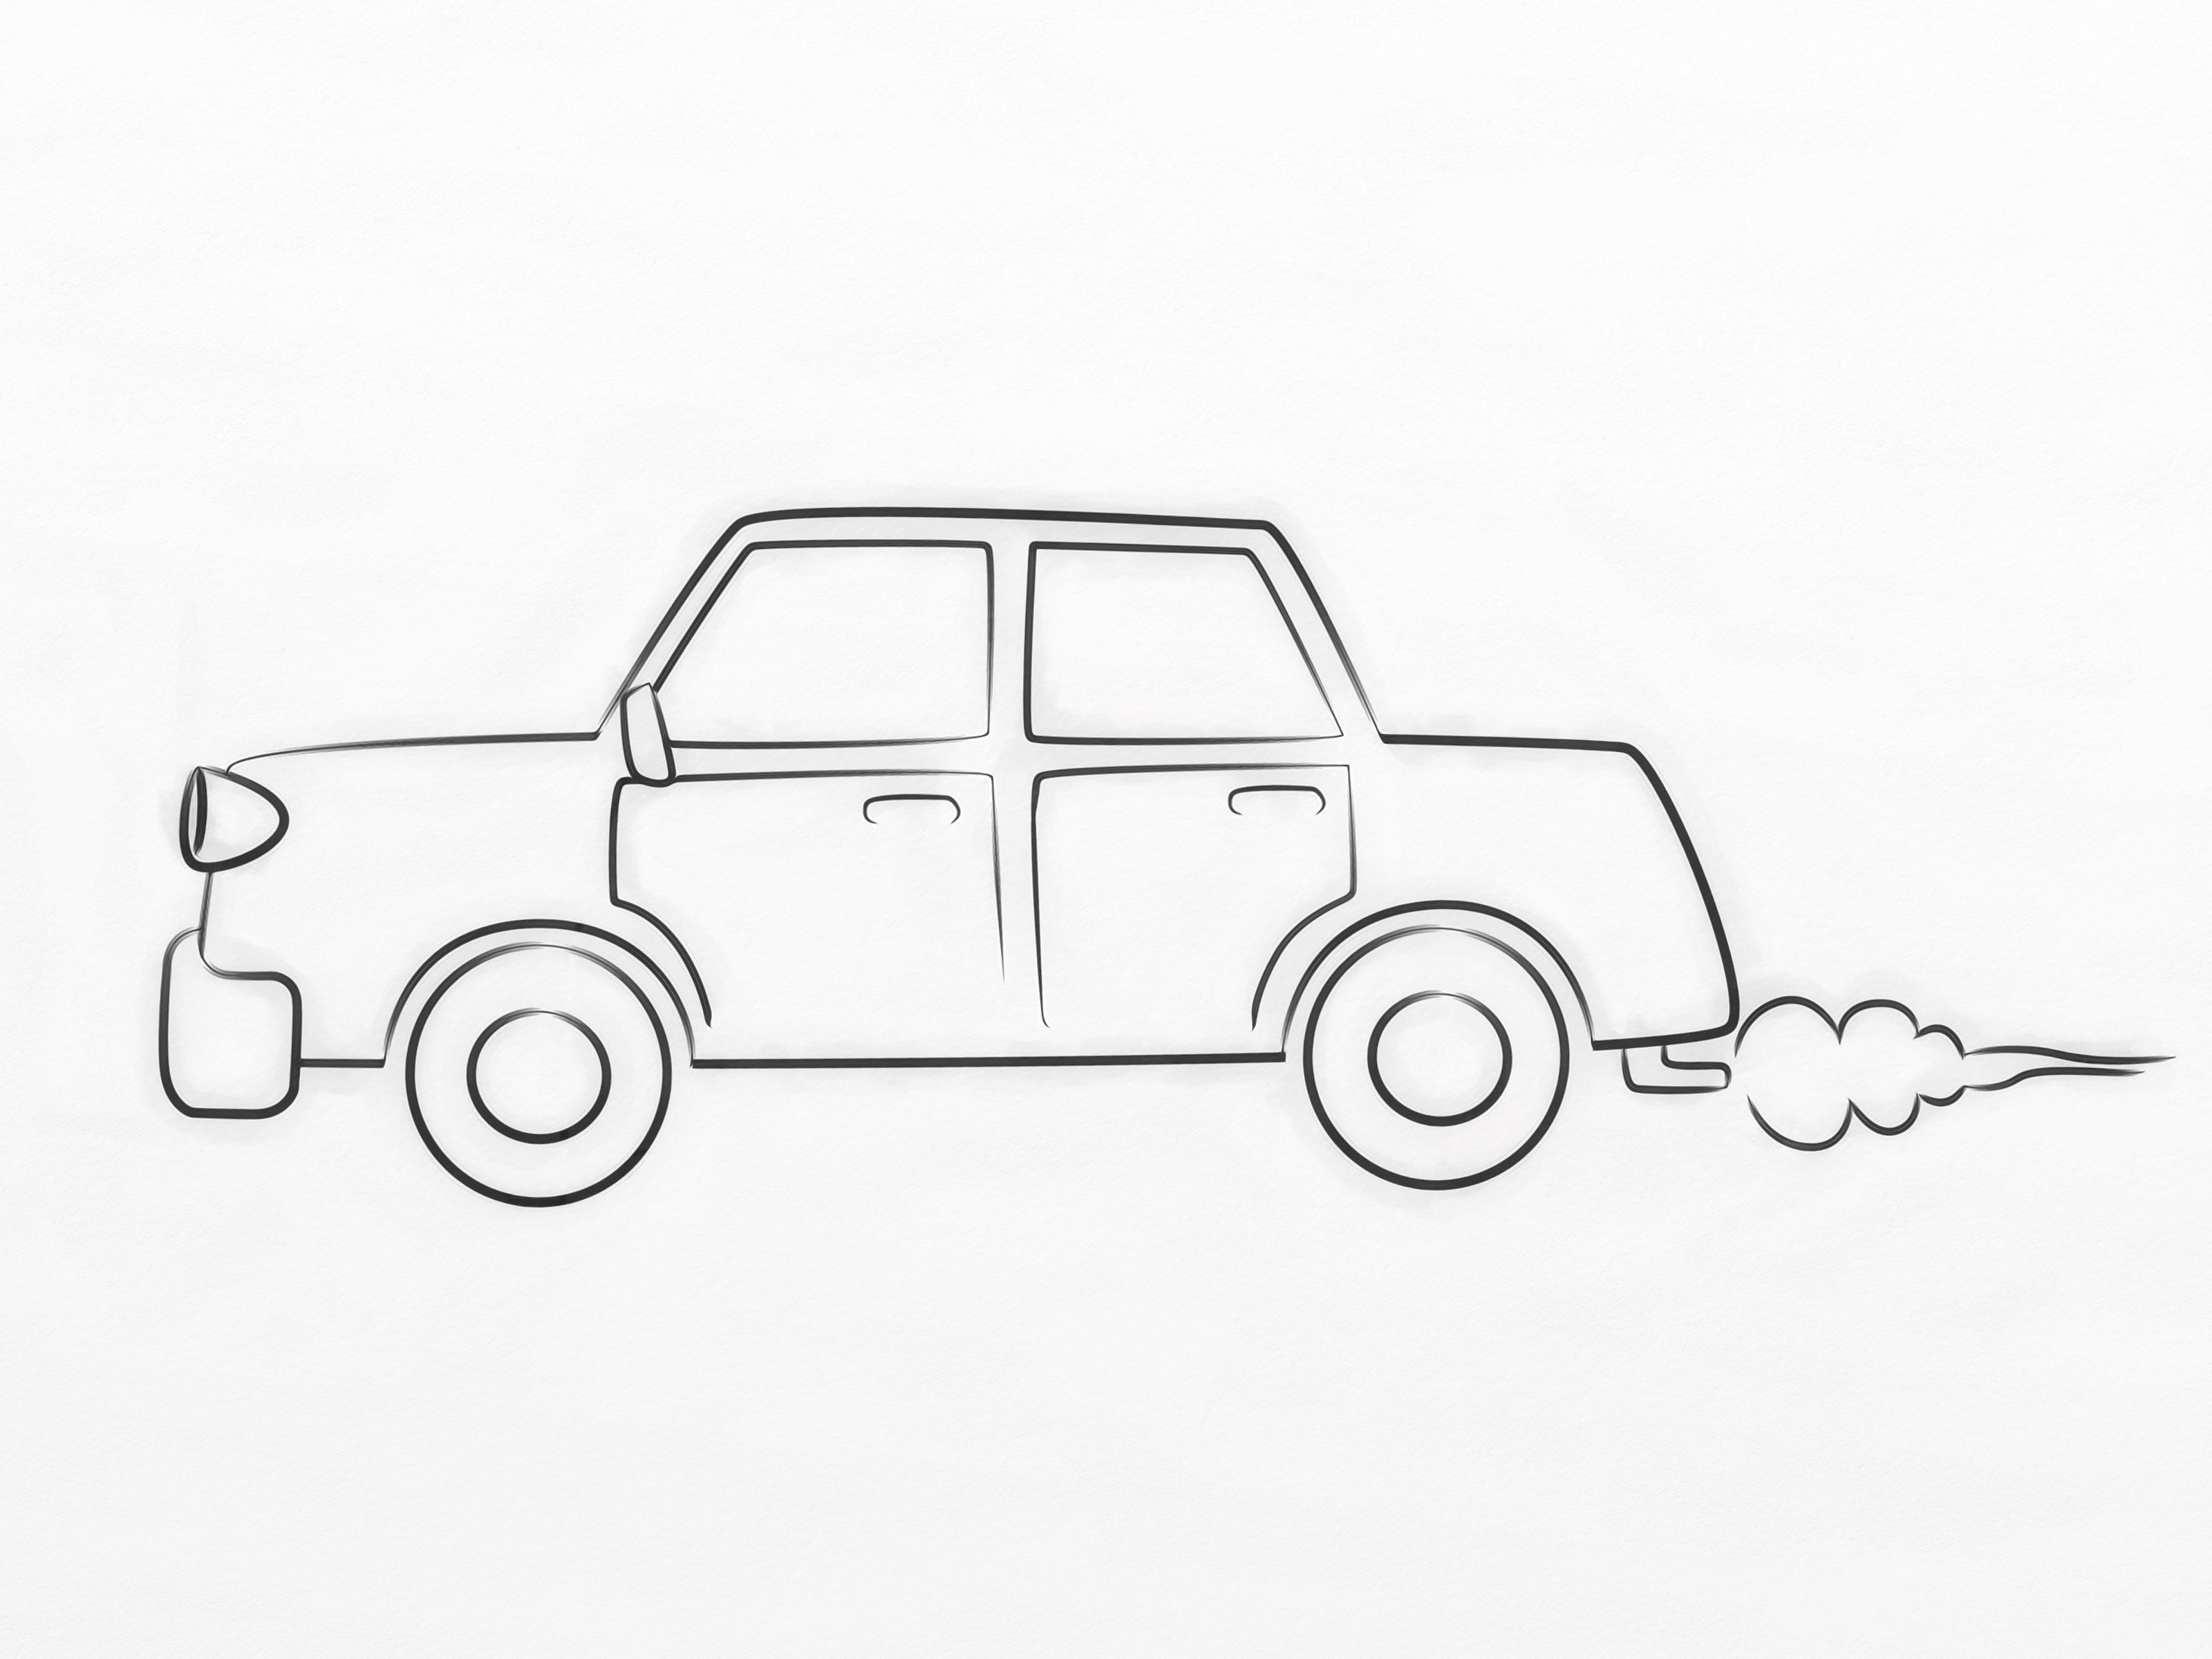 How To Draw A Cartoon Car 8 Steps With Pictures Wikihow With